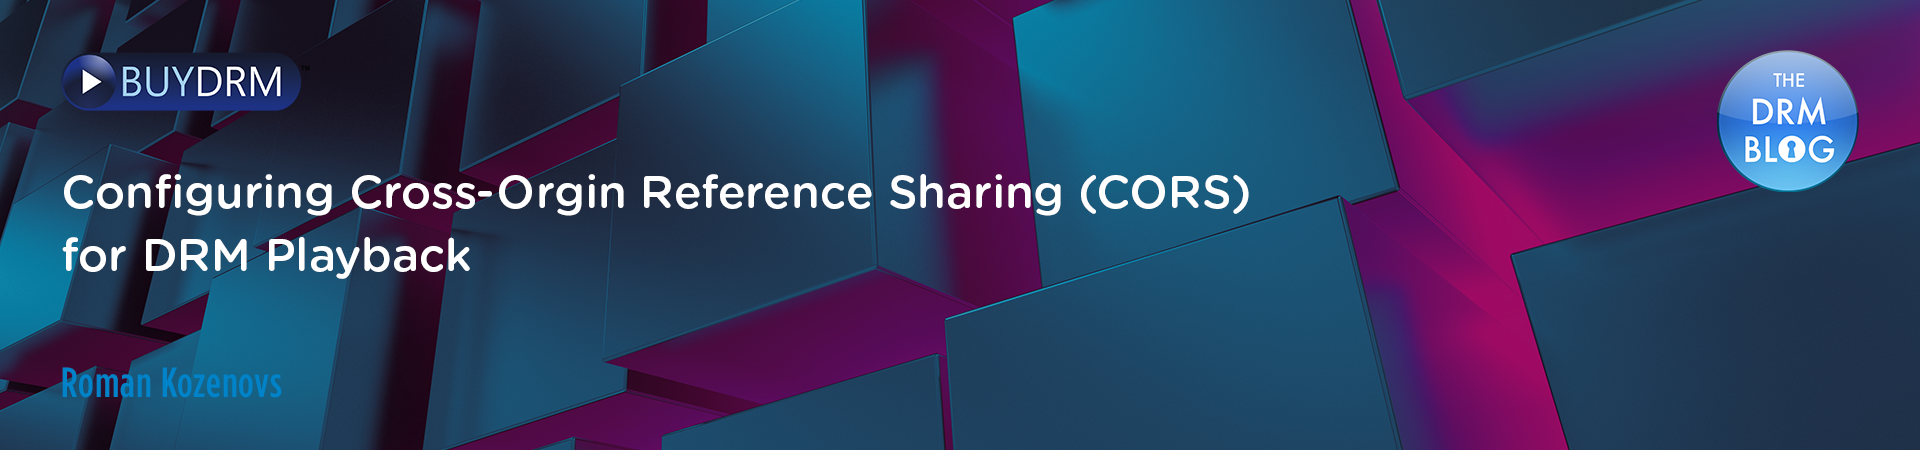 BuyDRM_Configuring Cross-Orgin Reference Sharing (CORS) for DRM Playback_BlogPost_1920x450